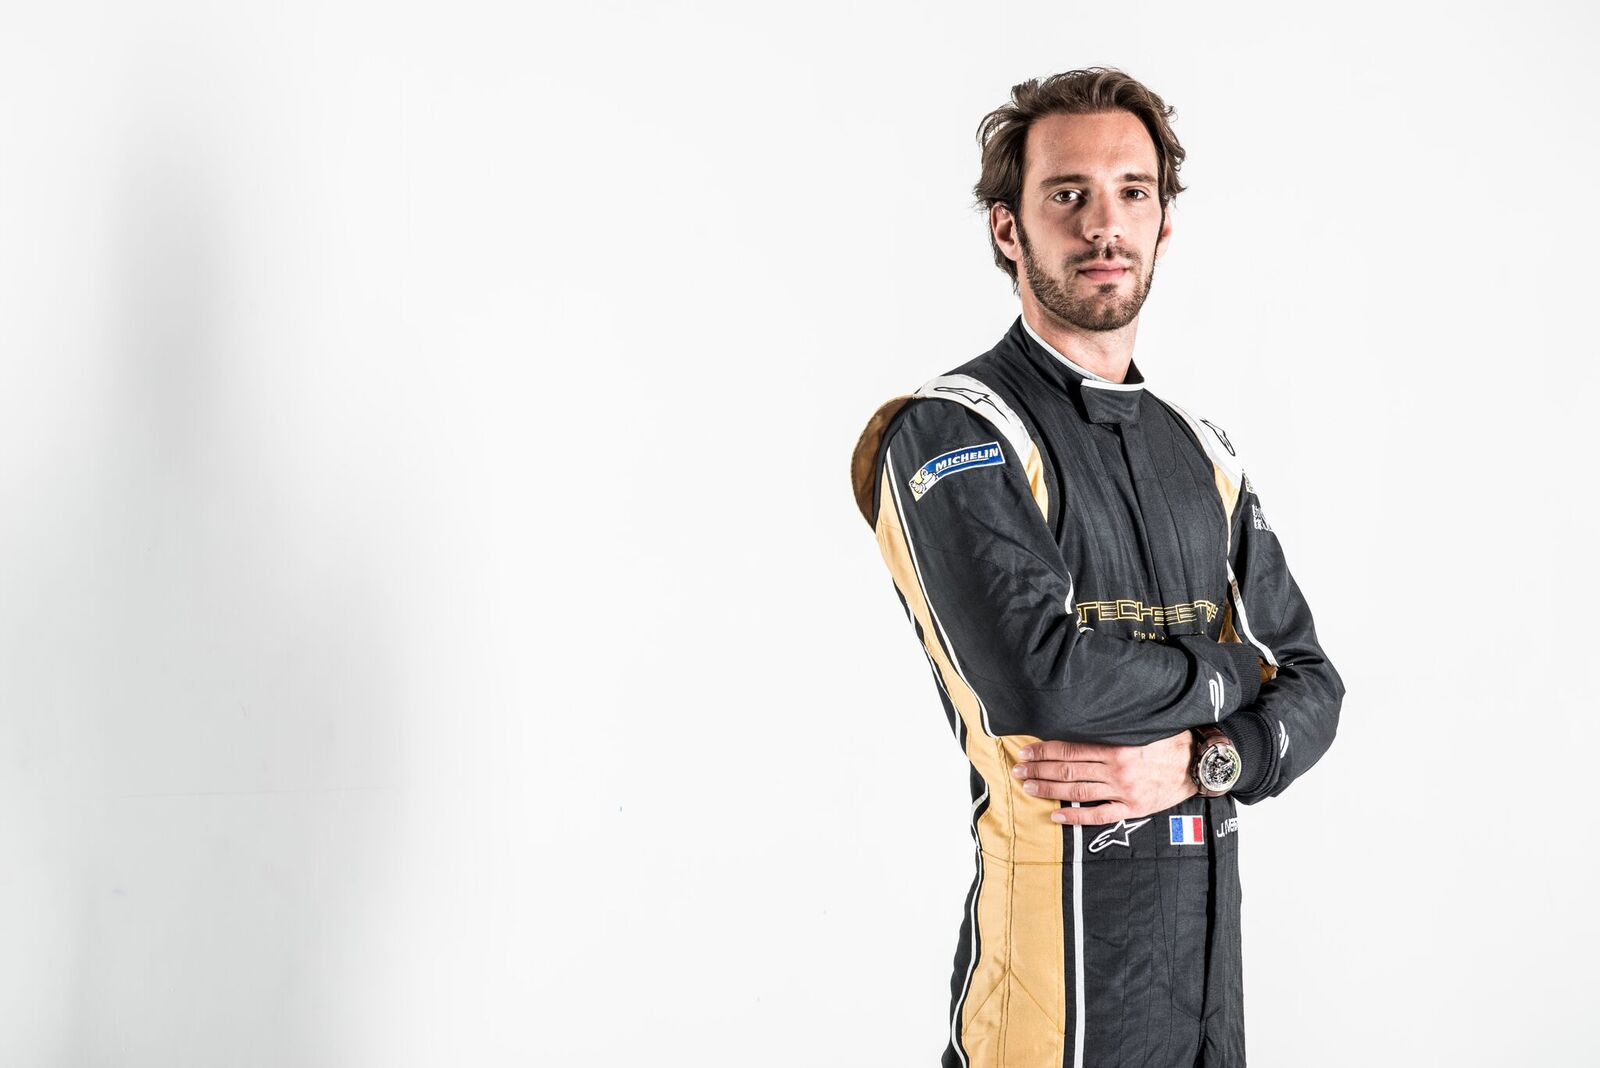 http://gpsportsmanagement.com/wp-content/uploads/2016/07/JEV-Techeetah-1.jpg